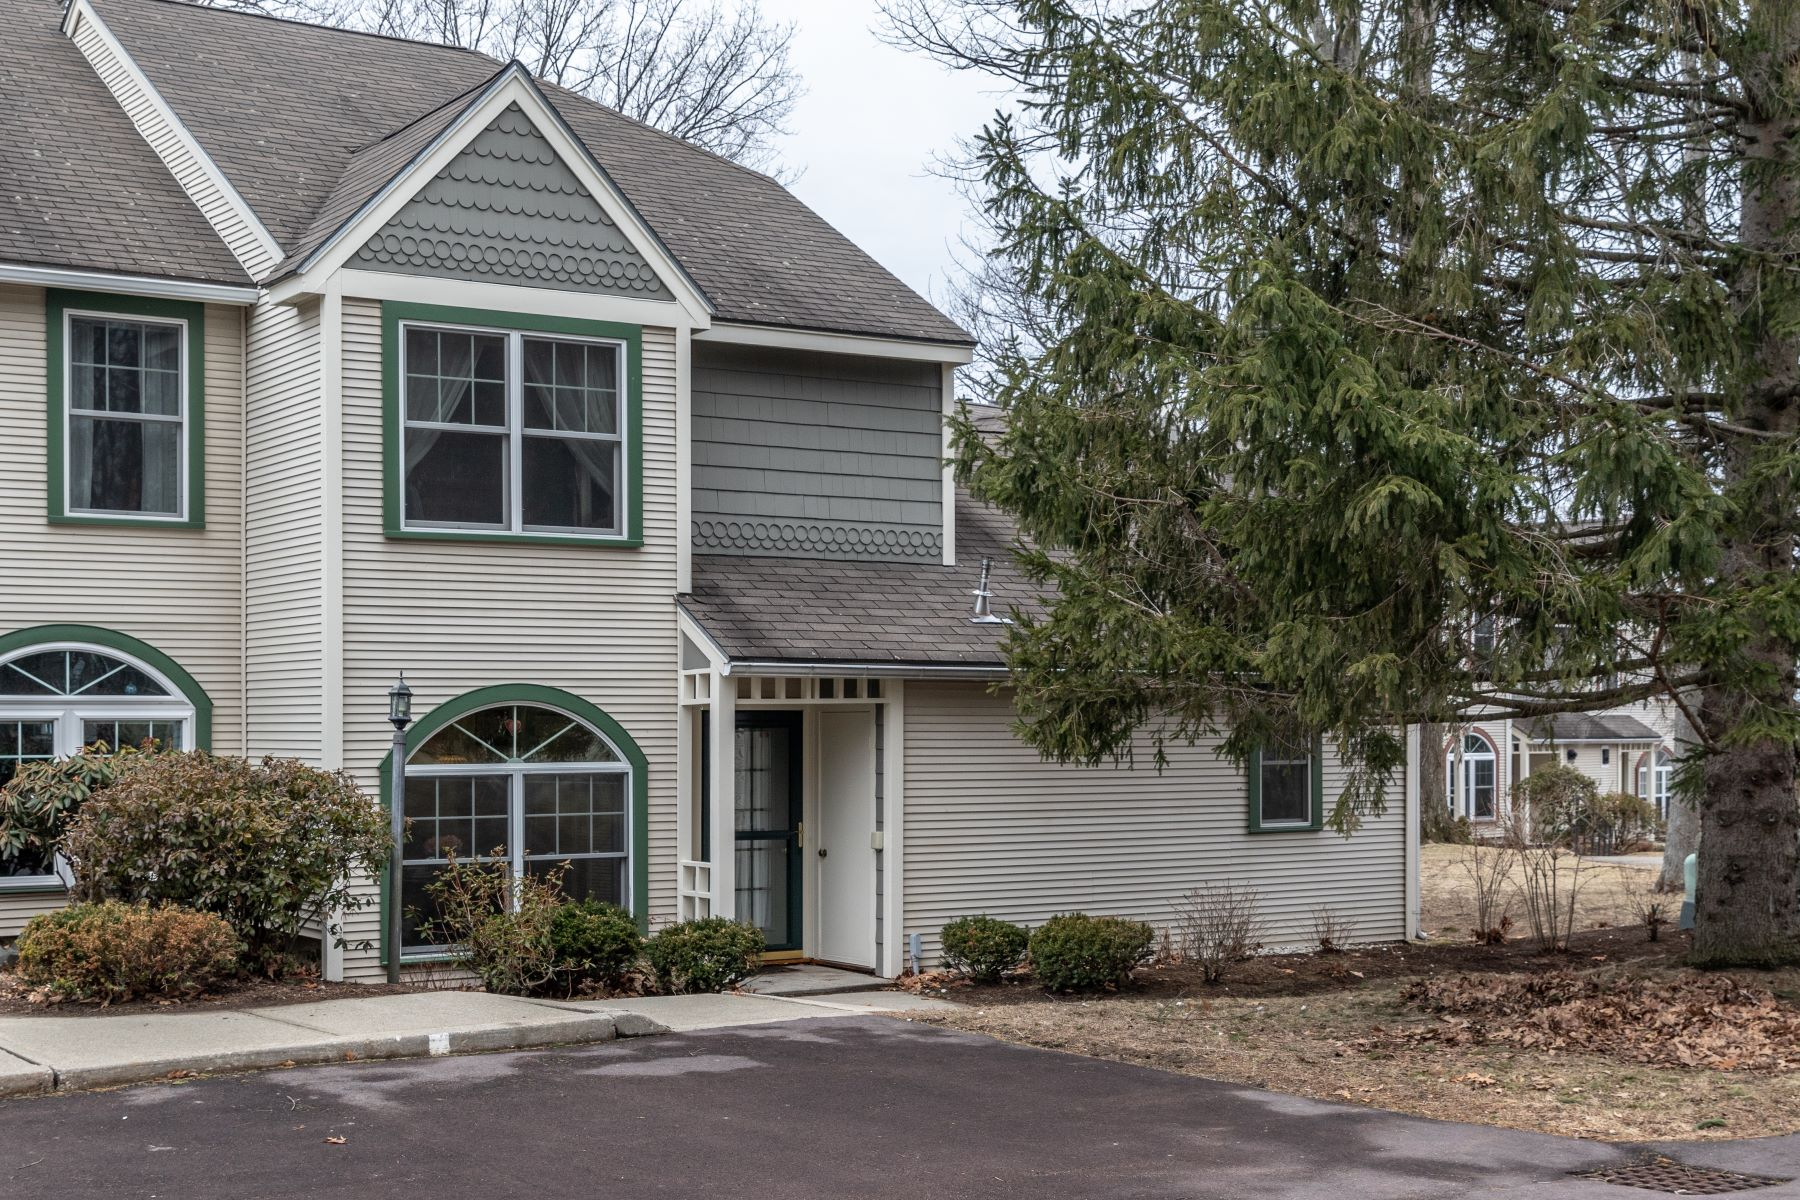 condominiums for Sale at 119 Northshore Drive, Burlington 119 Northshore Dr Burlington, Vermont 05408 United States